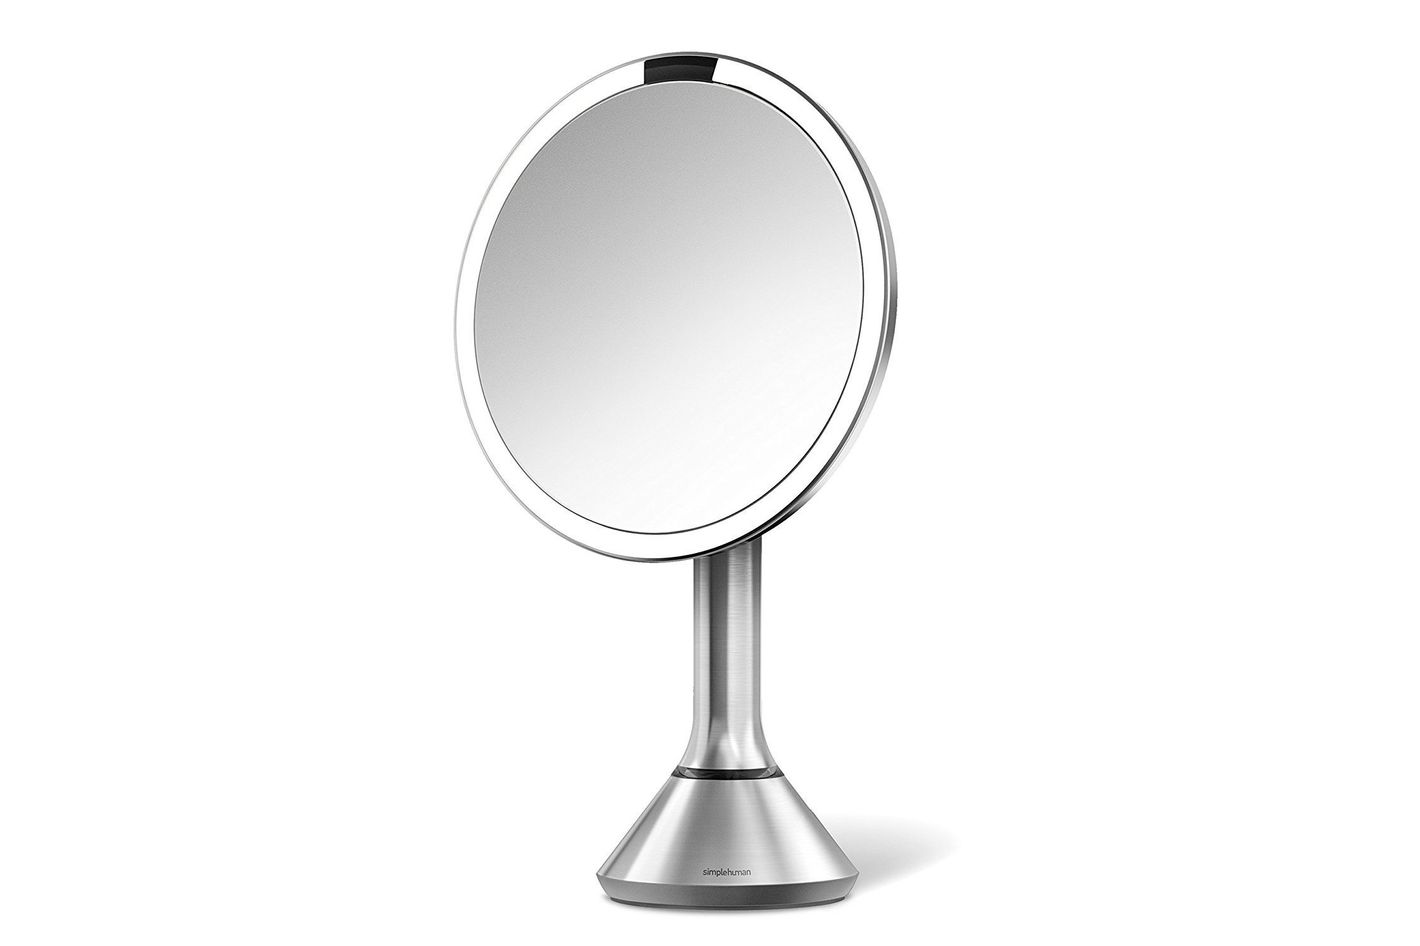 Simplehuman 8-Inch Sensor Mirror, Lighted Makeup Vanity Mirror